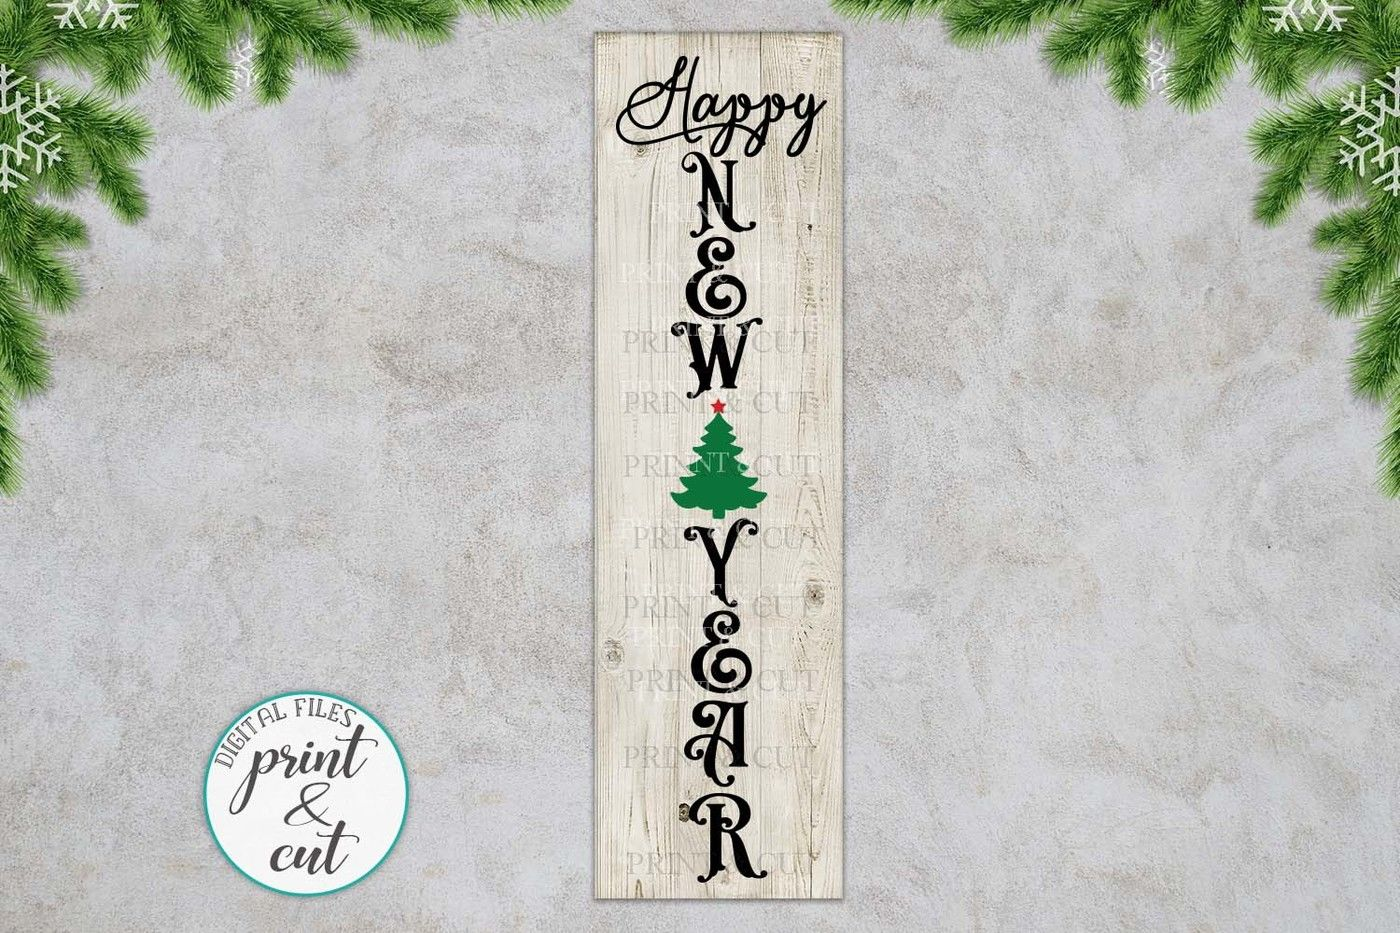 a8f3bcabbd29f Merry Christmas Happy New Year Believe bundle vertical sign By ...